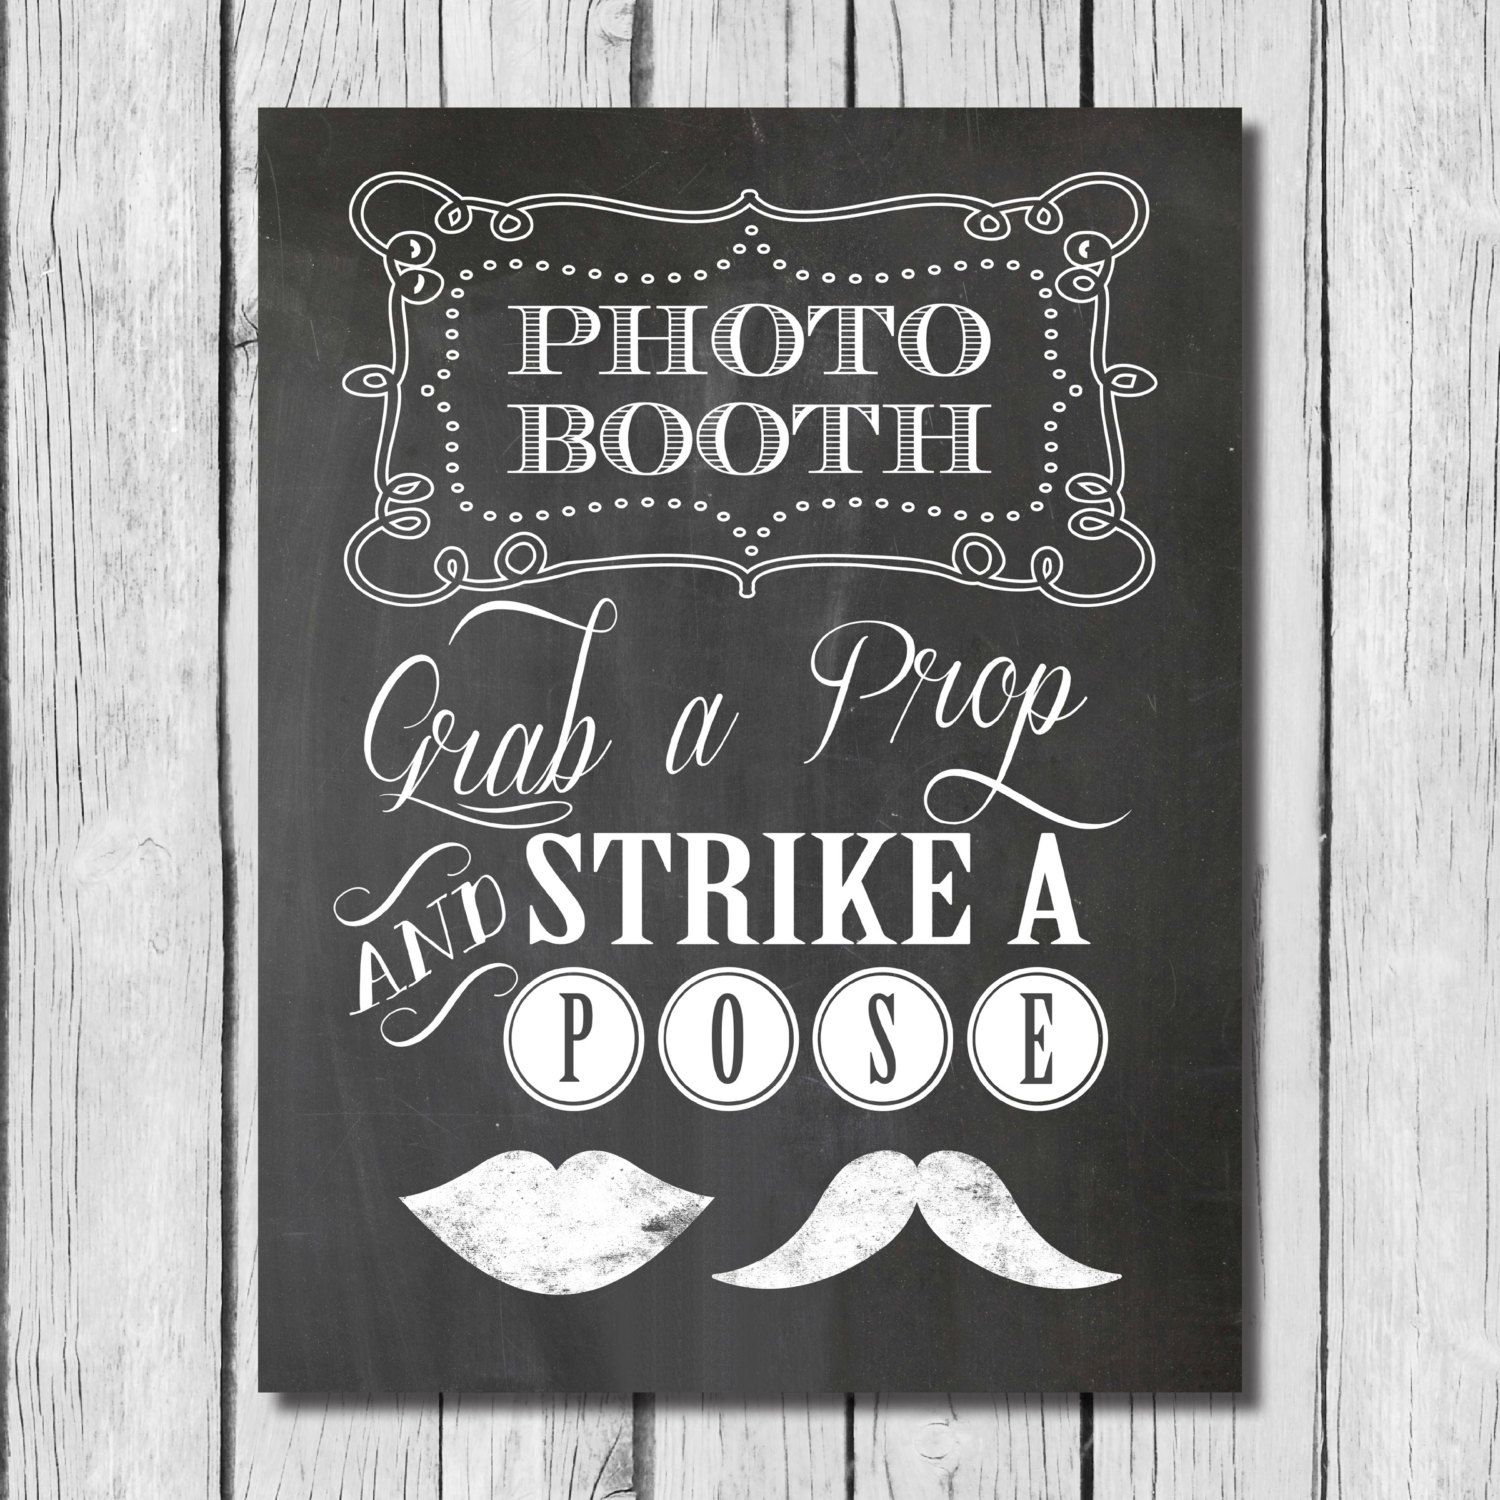 photograph about Free Printable Photo Booth Sign titled No cost Printable Kissing Booth Indicator - Free of charge Printable Get a